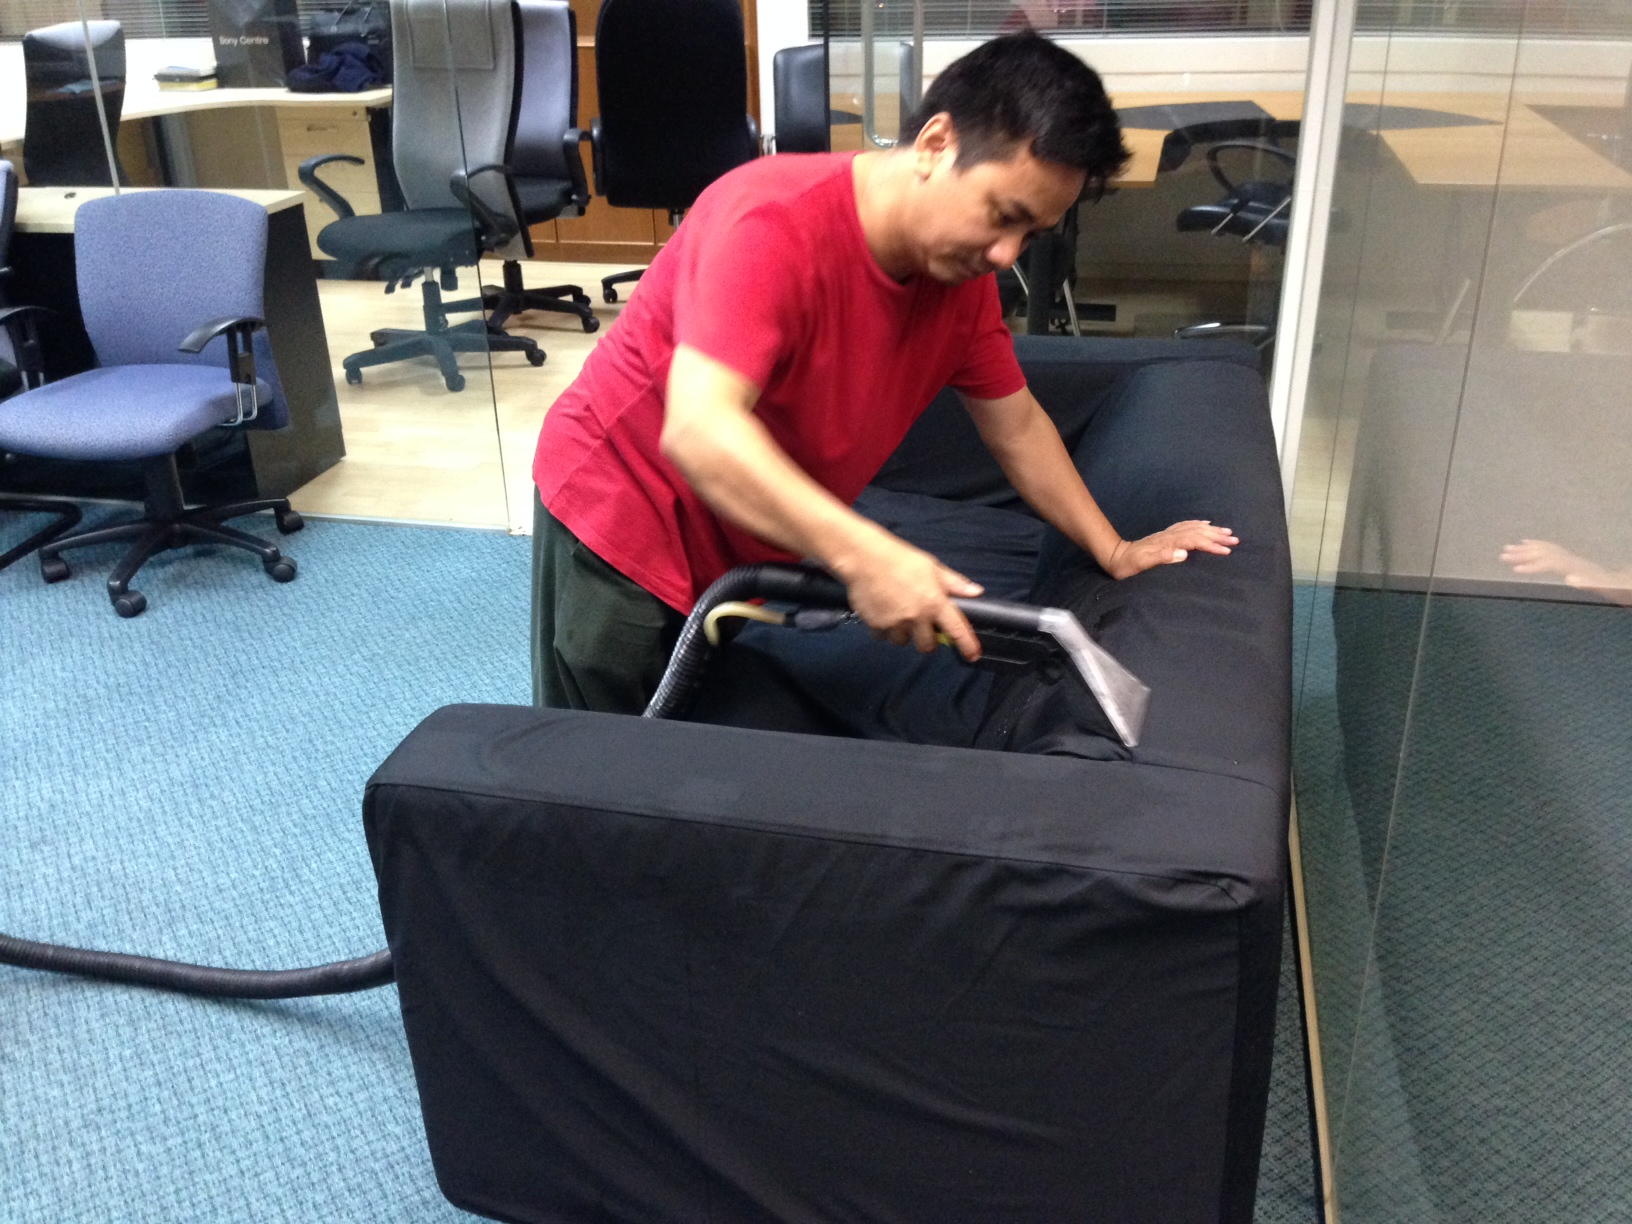 Cleaning sofa in office.